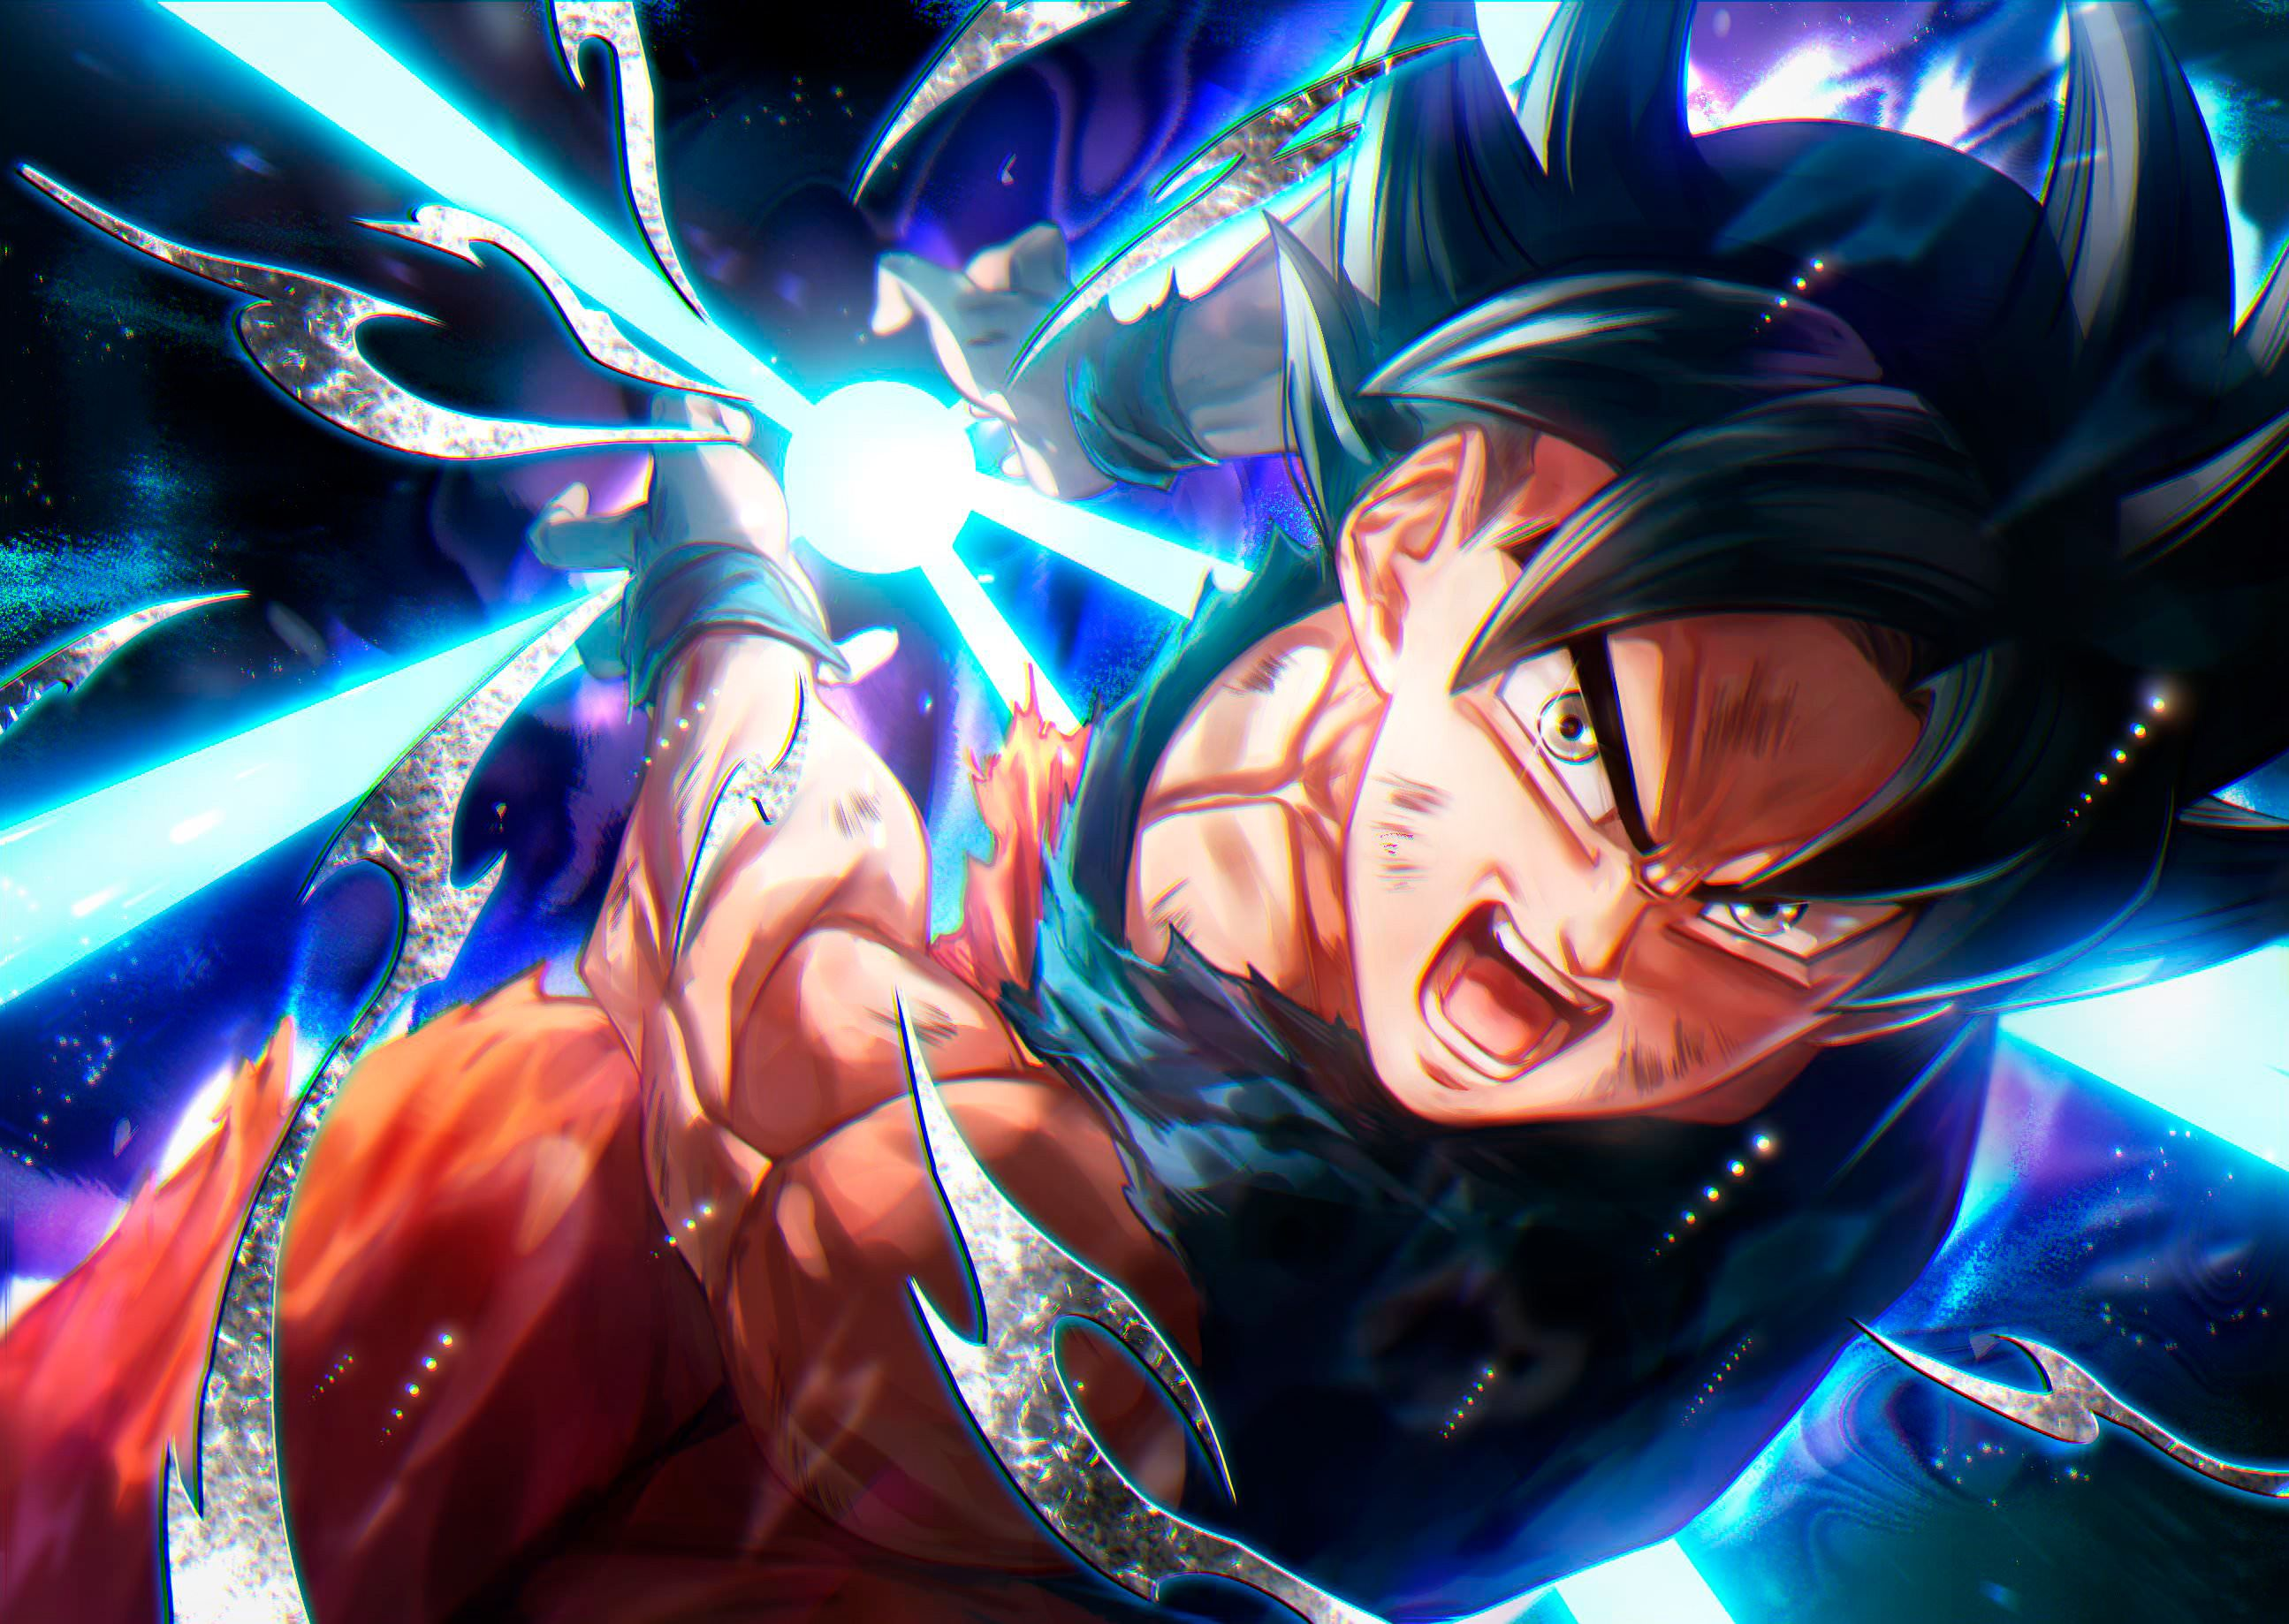 Enjoy Great Images Of Japanese Anime Anime Dragon Ball Dragon Ball Wallpapers Dragon Ball Goku